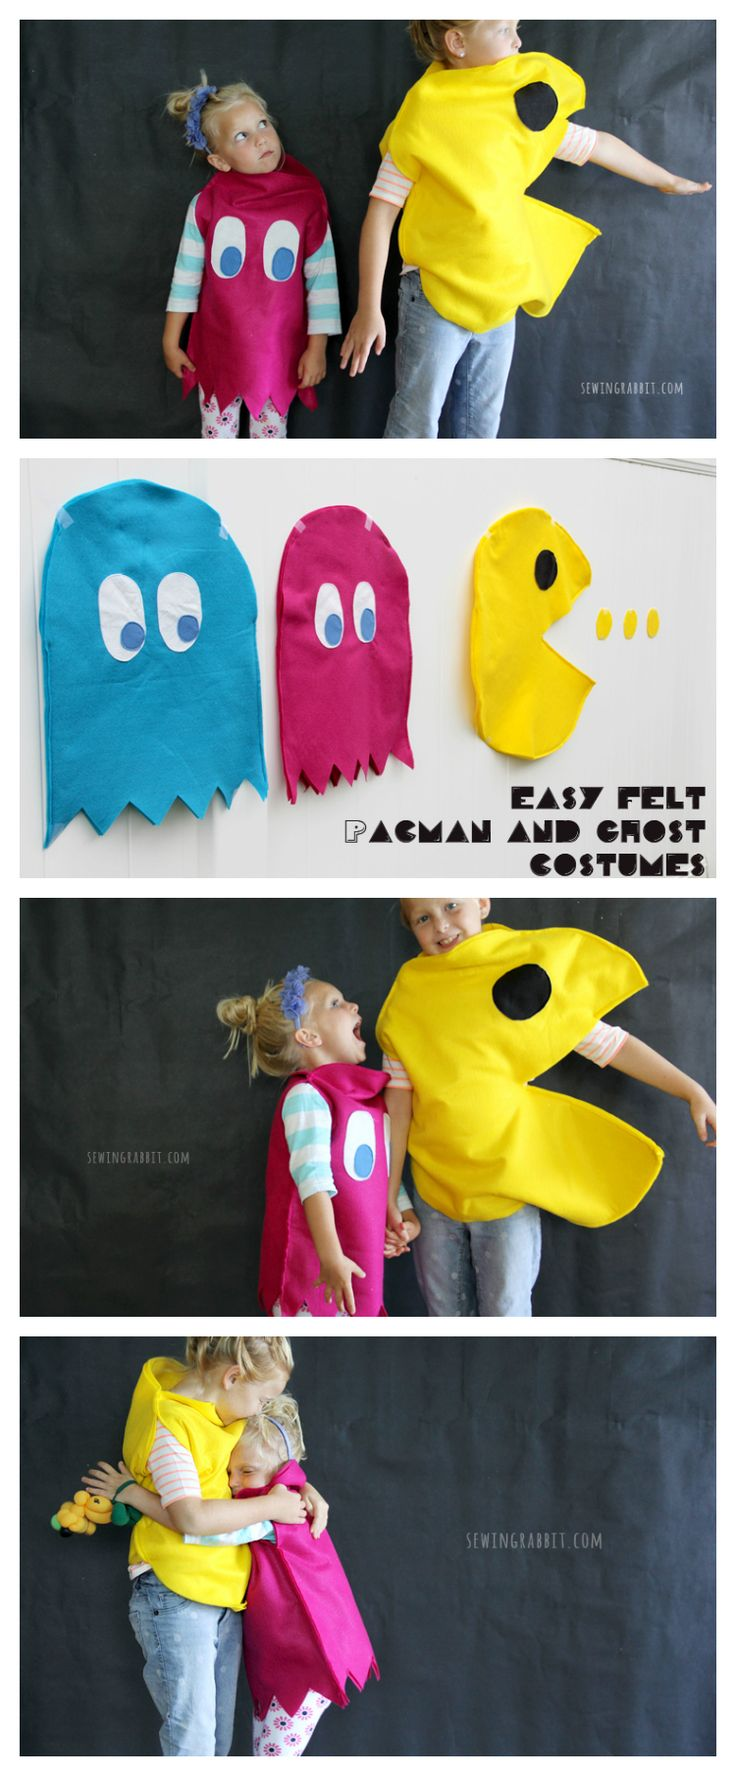 Easy Felt Handmade Costume for Kids | Kids Costume Ideas | Pac-Man & Ghosts from @mesewcrazy